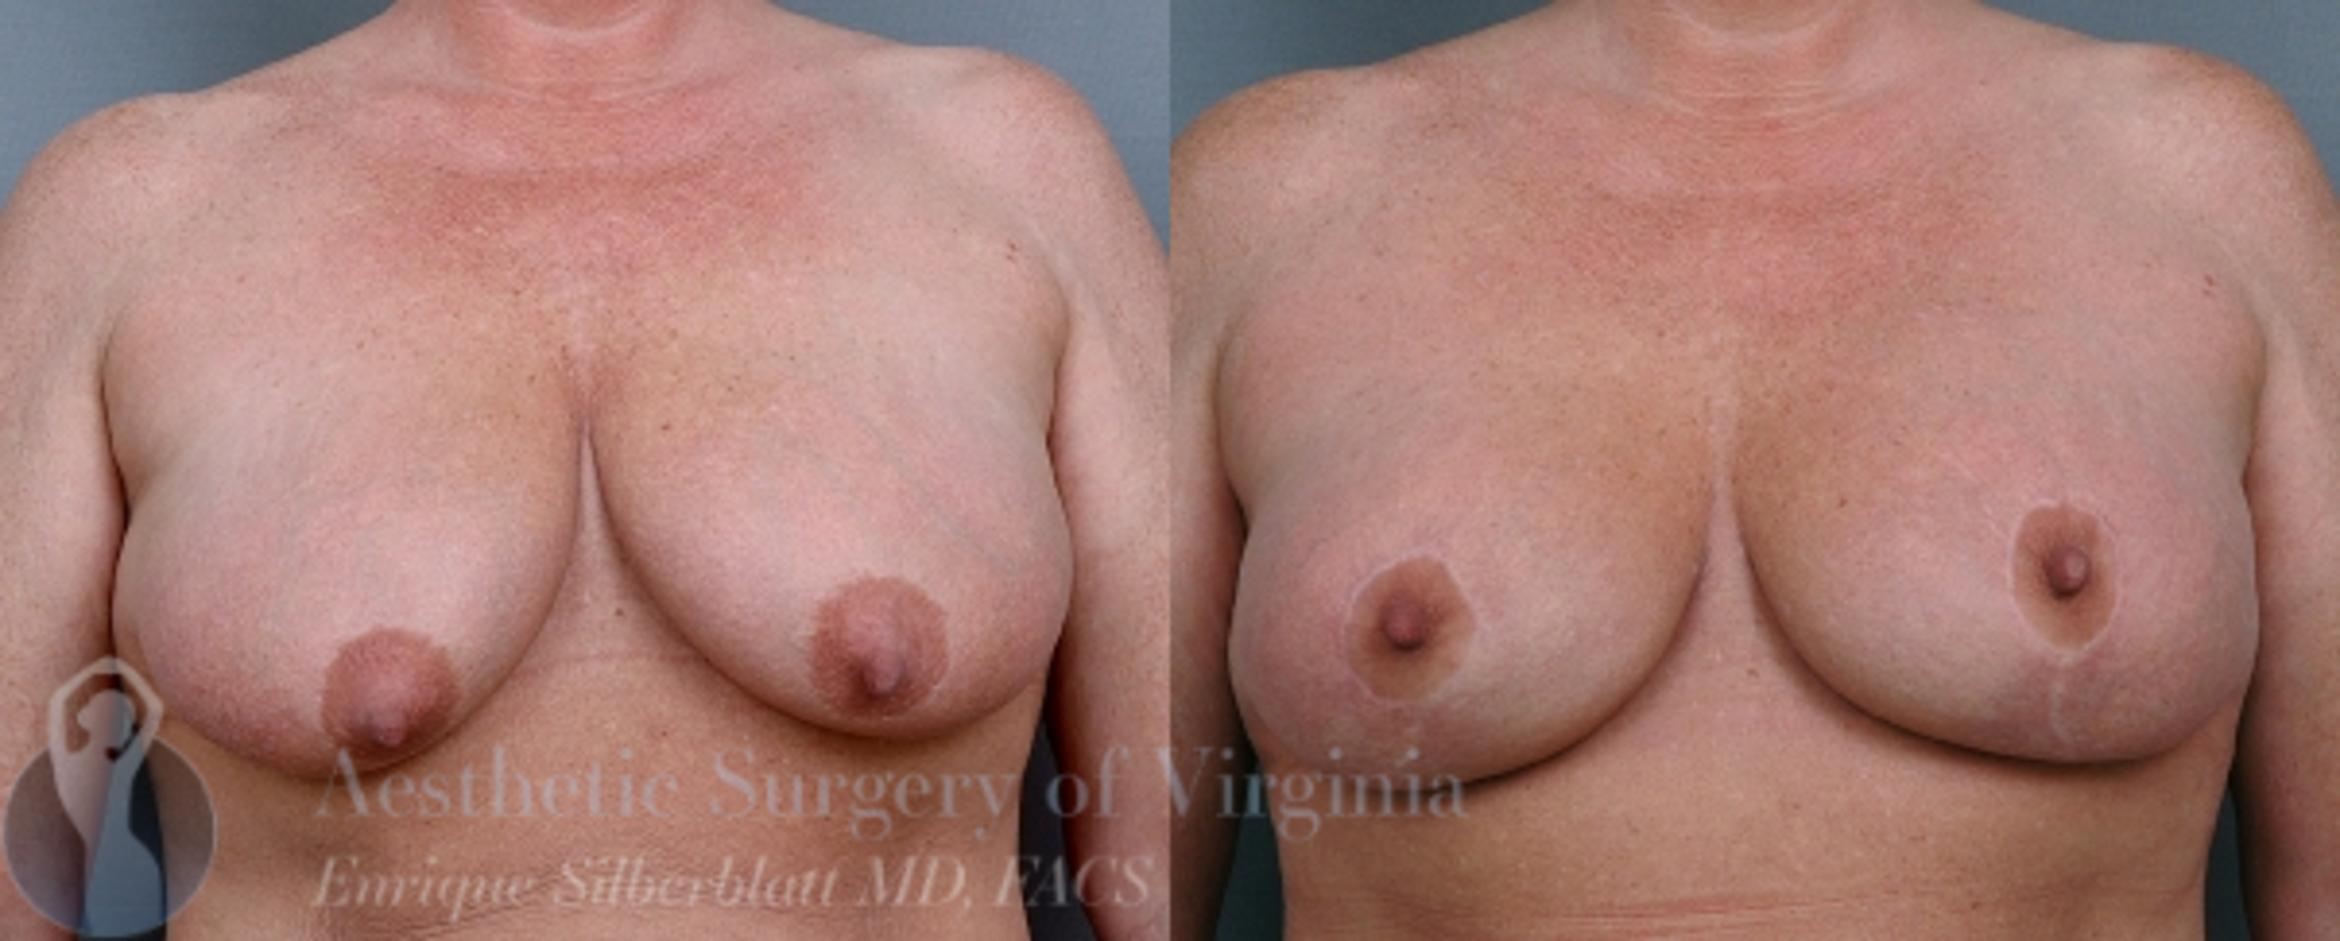 Breast Lift Case 20 Before & After View #1 | Roanoke, VA | Aesthetic Surgery of Virginia: Enrique Silberblatt, MD